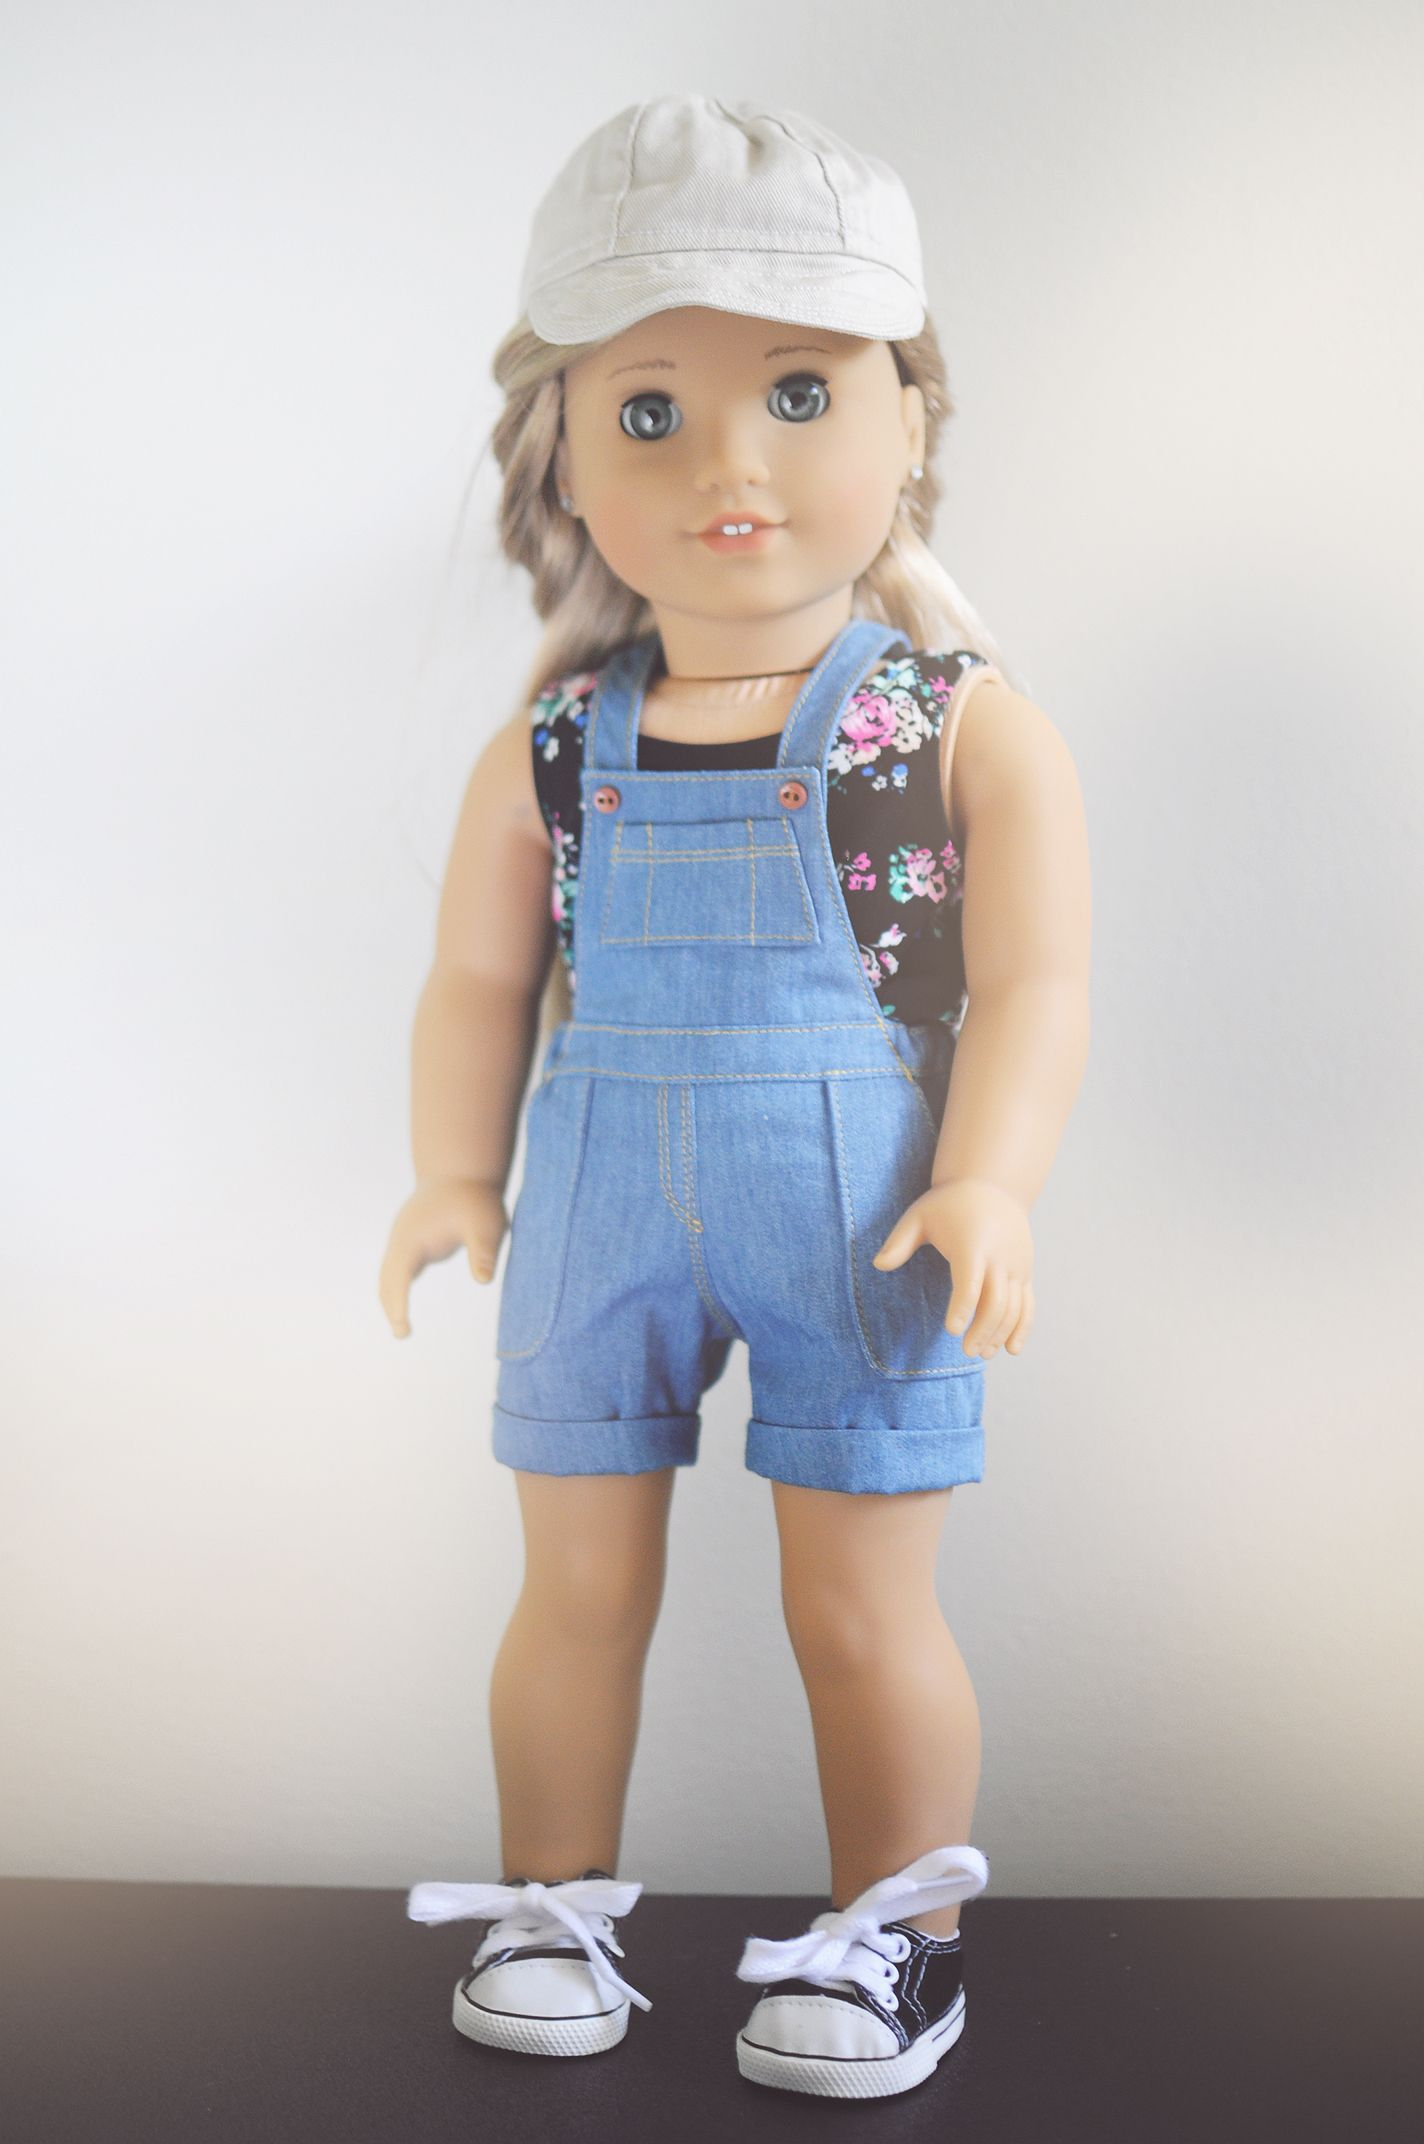 Hat by Piper and Phoebe Tank by QTΠ Doll Clothing Overalls by ...